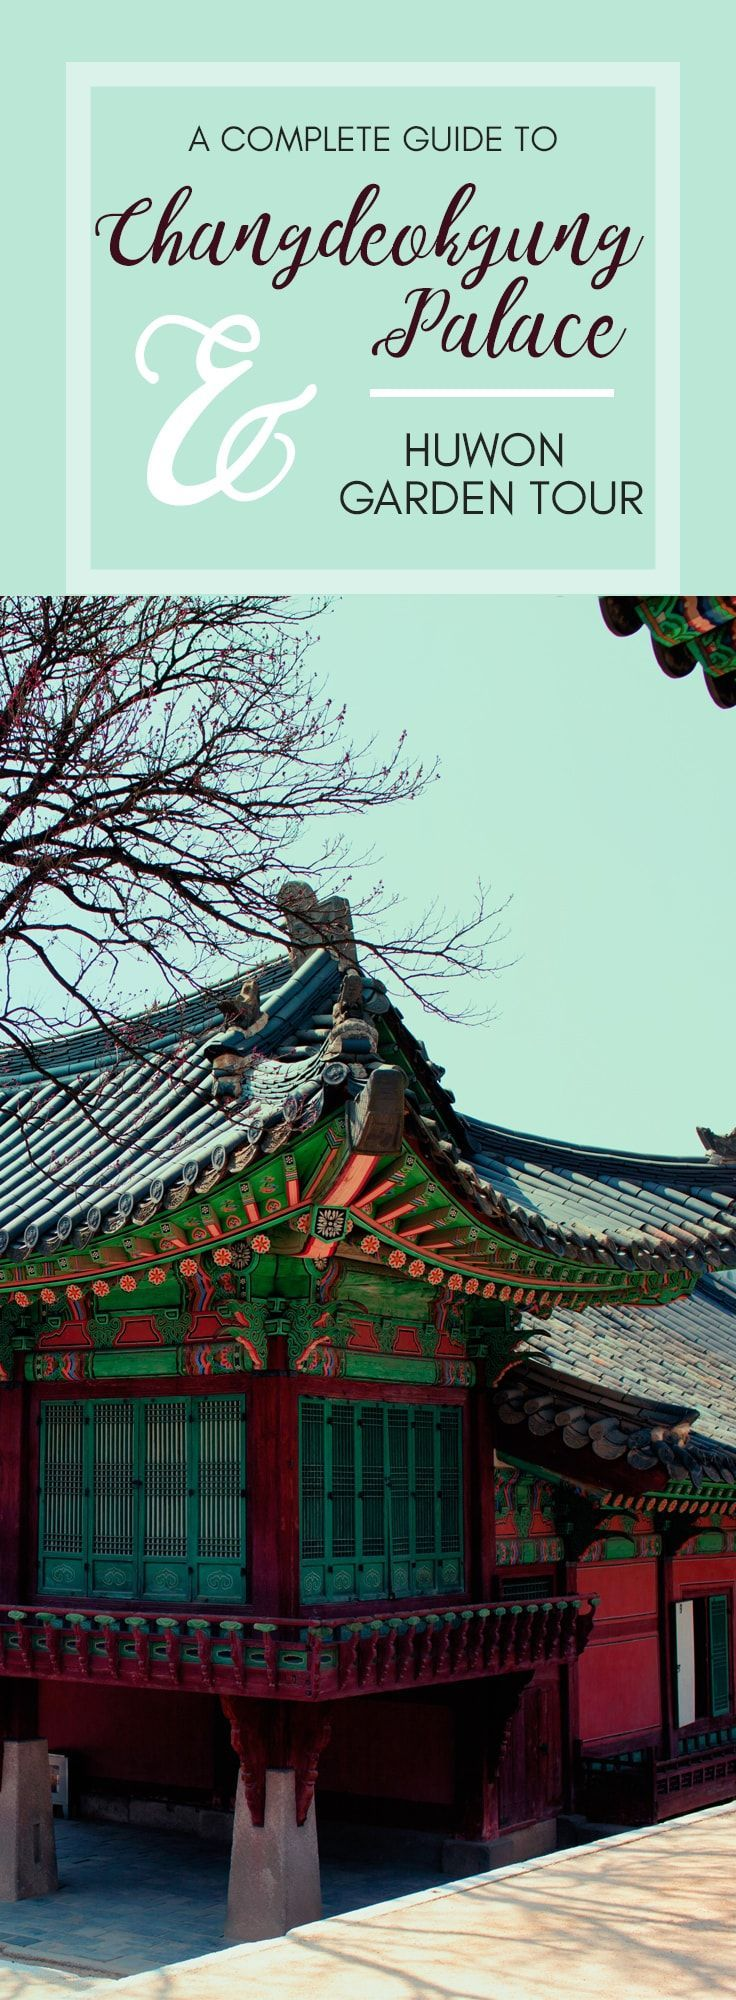 (1 Anguk, Changdeokgung and The Secret Garden) The complete guide to Changdeokgung palace; the most beautiful of Seoul's five main palaces. Take a lot at Huwon, or The Secret Garden in spring.